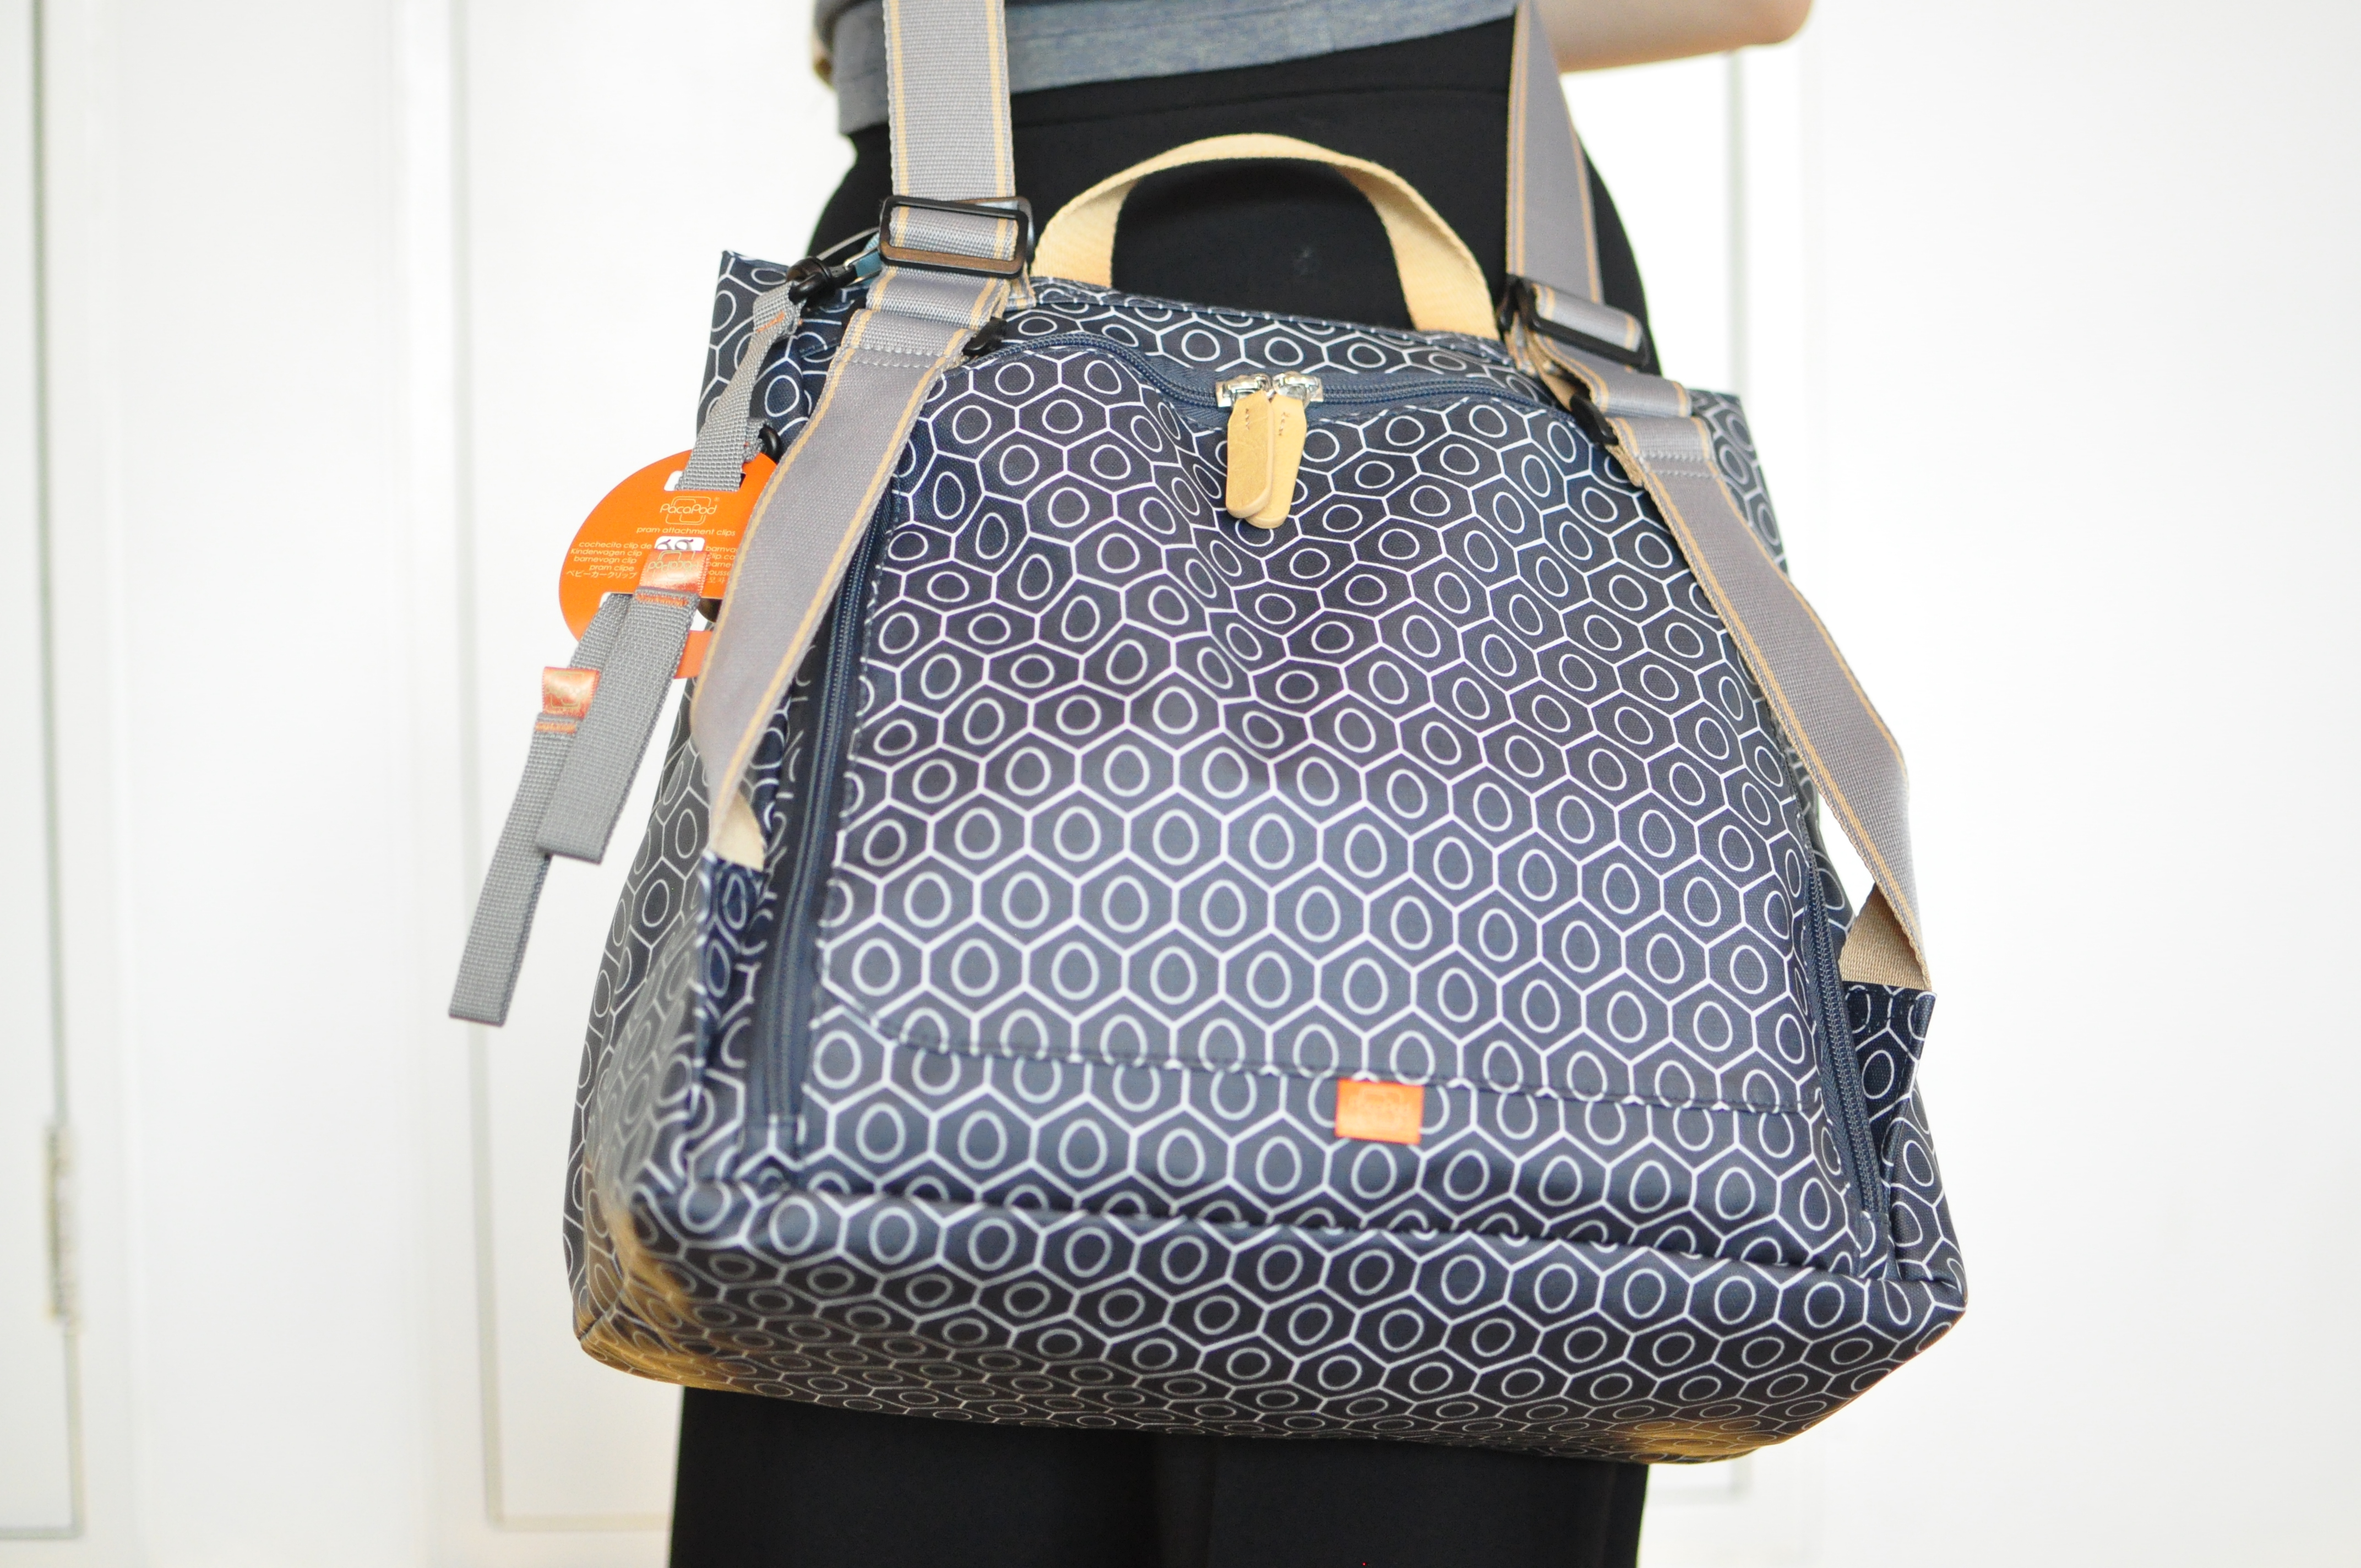 Pacapod Lewis Changing Bag Review: Store all your baby gear in this stylish and interchangeable diaper bag perfect for busy parents